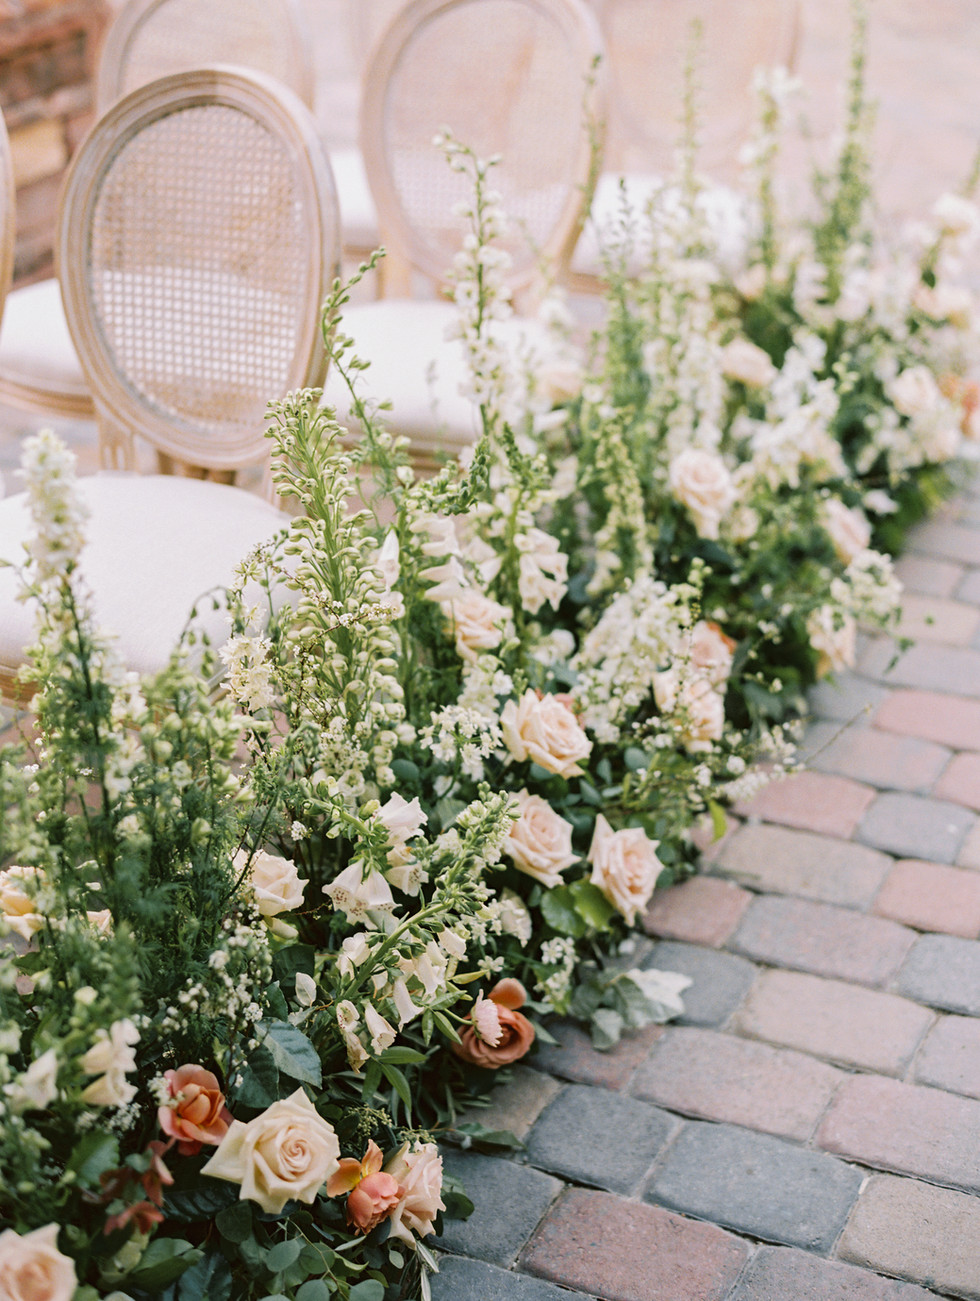 Aisle floral with garden roses, foxglove, and delphinium. Photo: Gaby Jeter